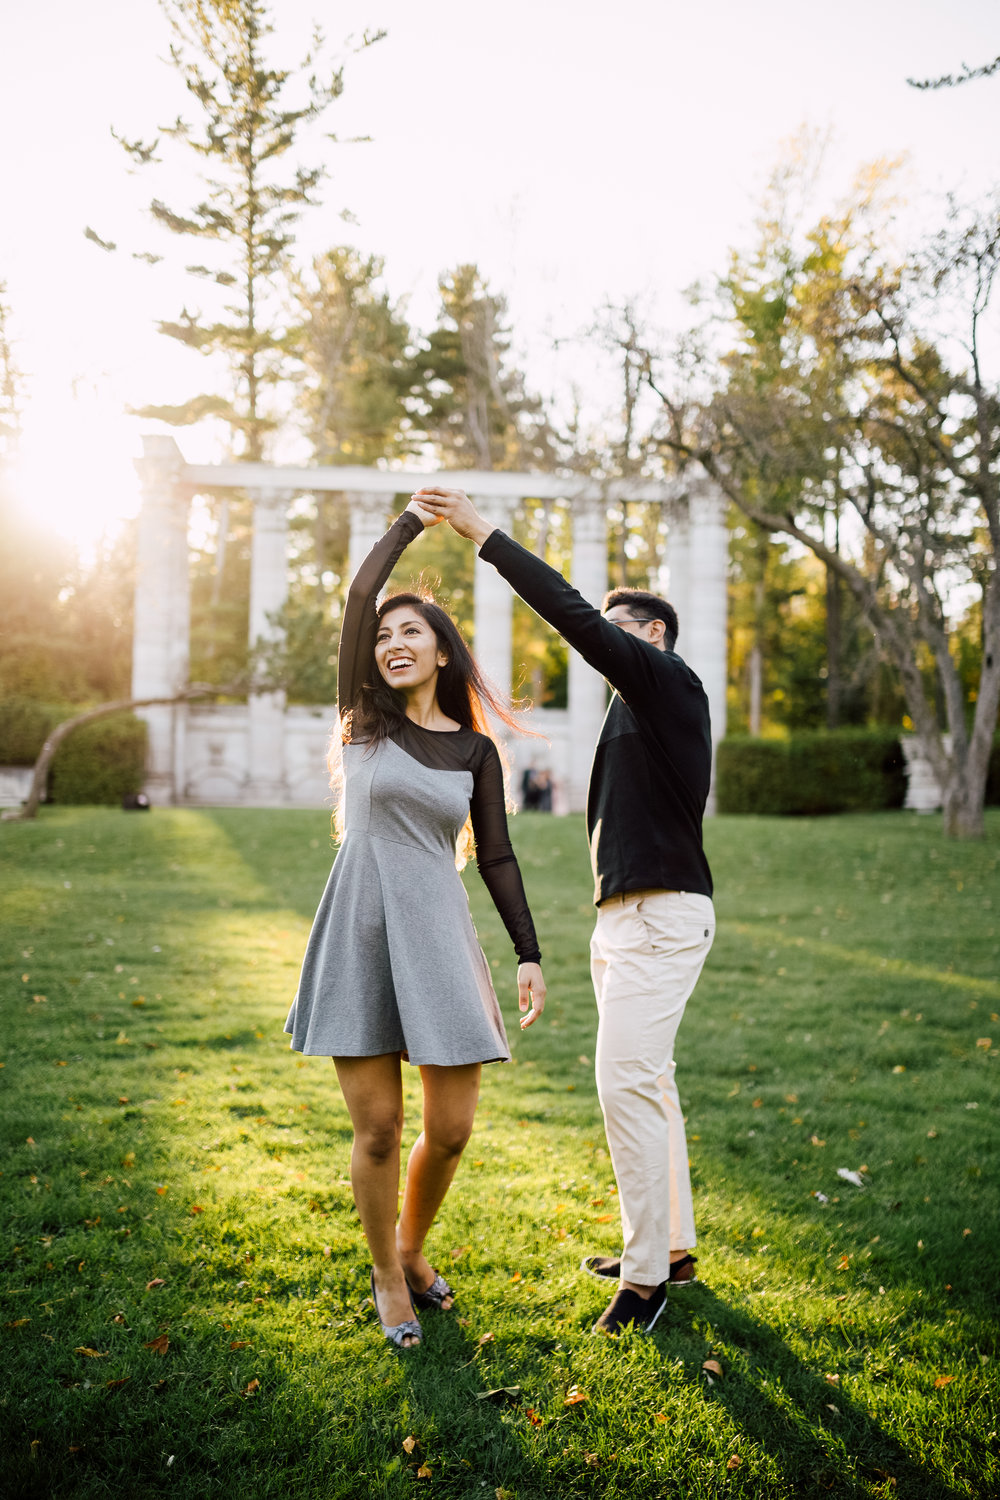 Engagementphotography_Final_GuildPark_Youthebestphotography-5017.jpg